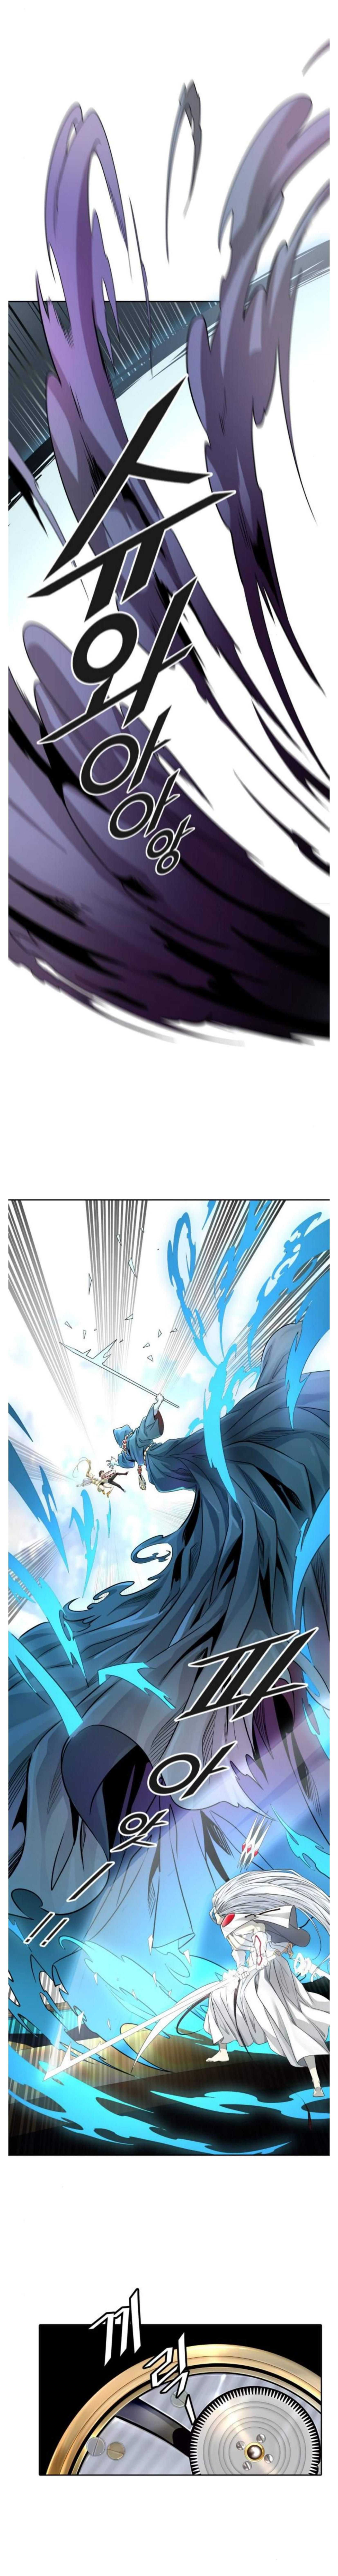 tower of god: Chapter 498 - Page 10